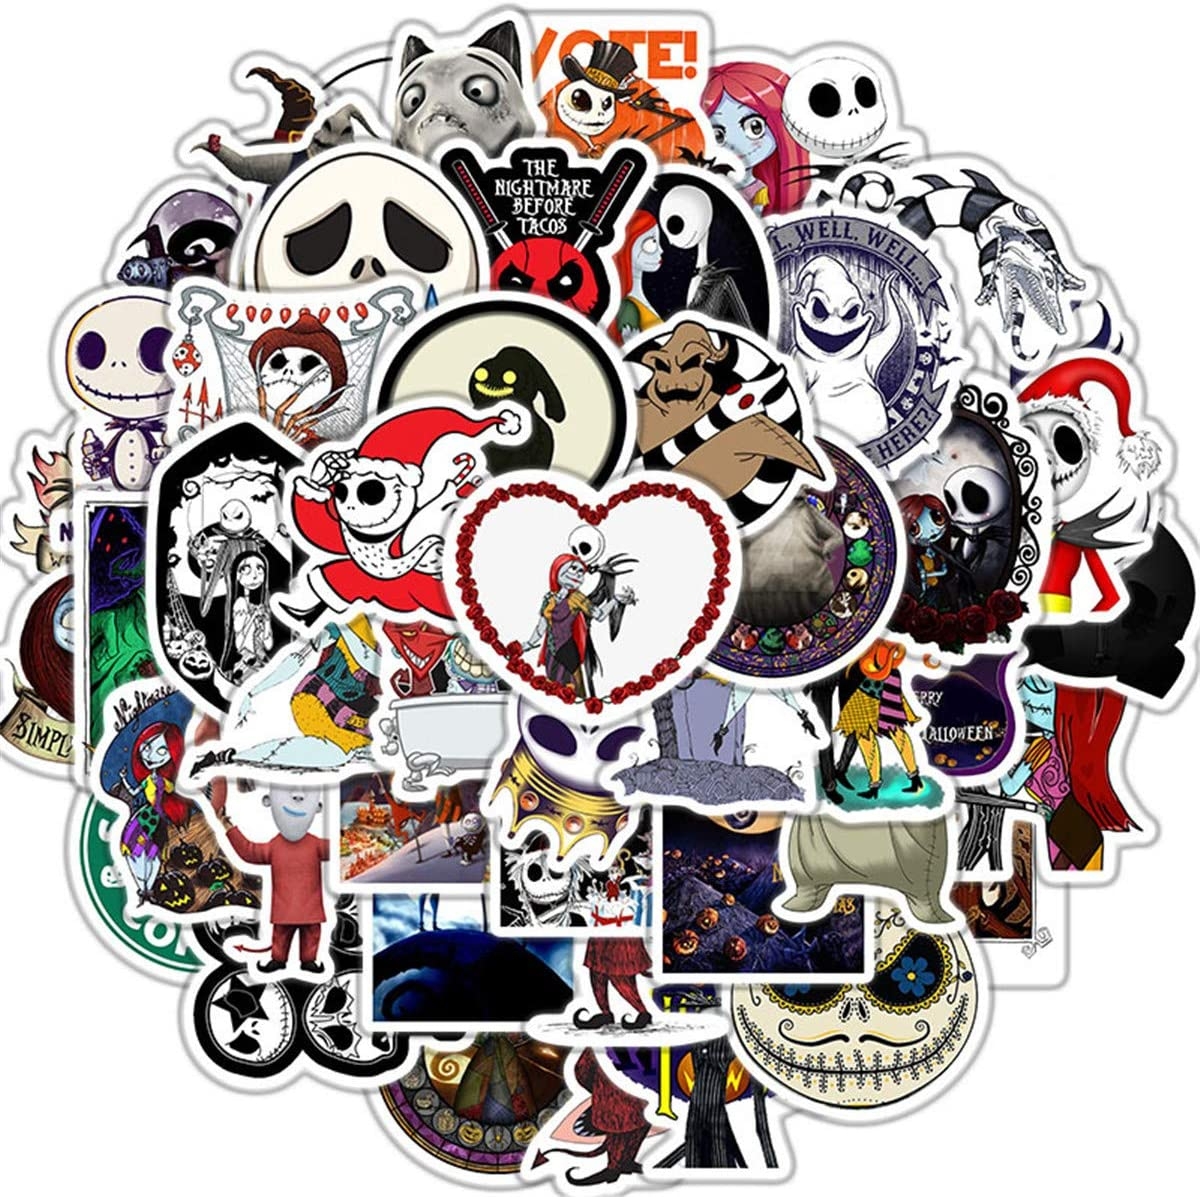 The Nightmare Before Christmas Thriller Horror Style Toy Stickers (50 PCS) Funny Tim Burton's Stickers for Teens, Girls, Kids - Halloween Theme Stickers for Waterbottles,Laptop,Phone (Halloween)